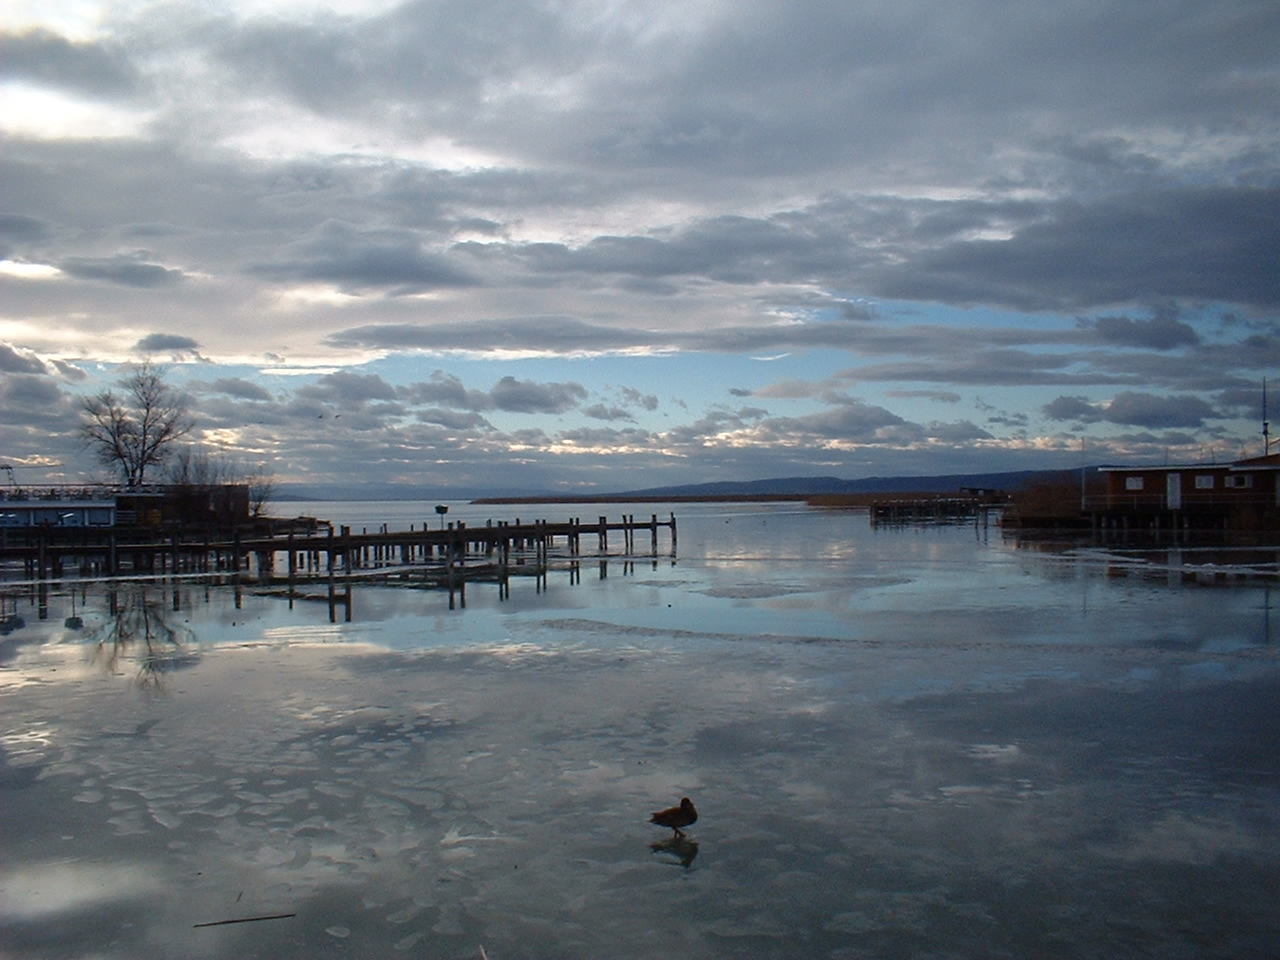 File:Neusiedler See im Winter.jpg - Wikipedia, the free encyclopedia